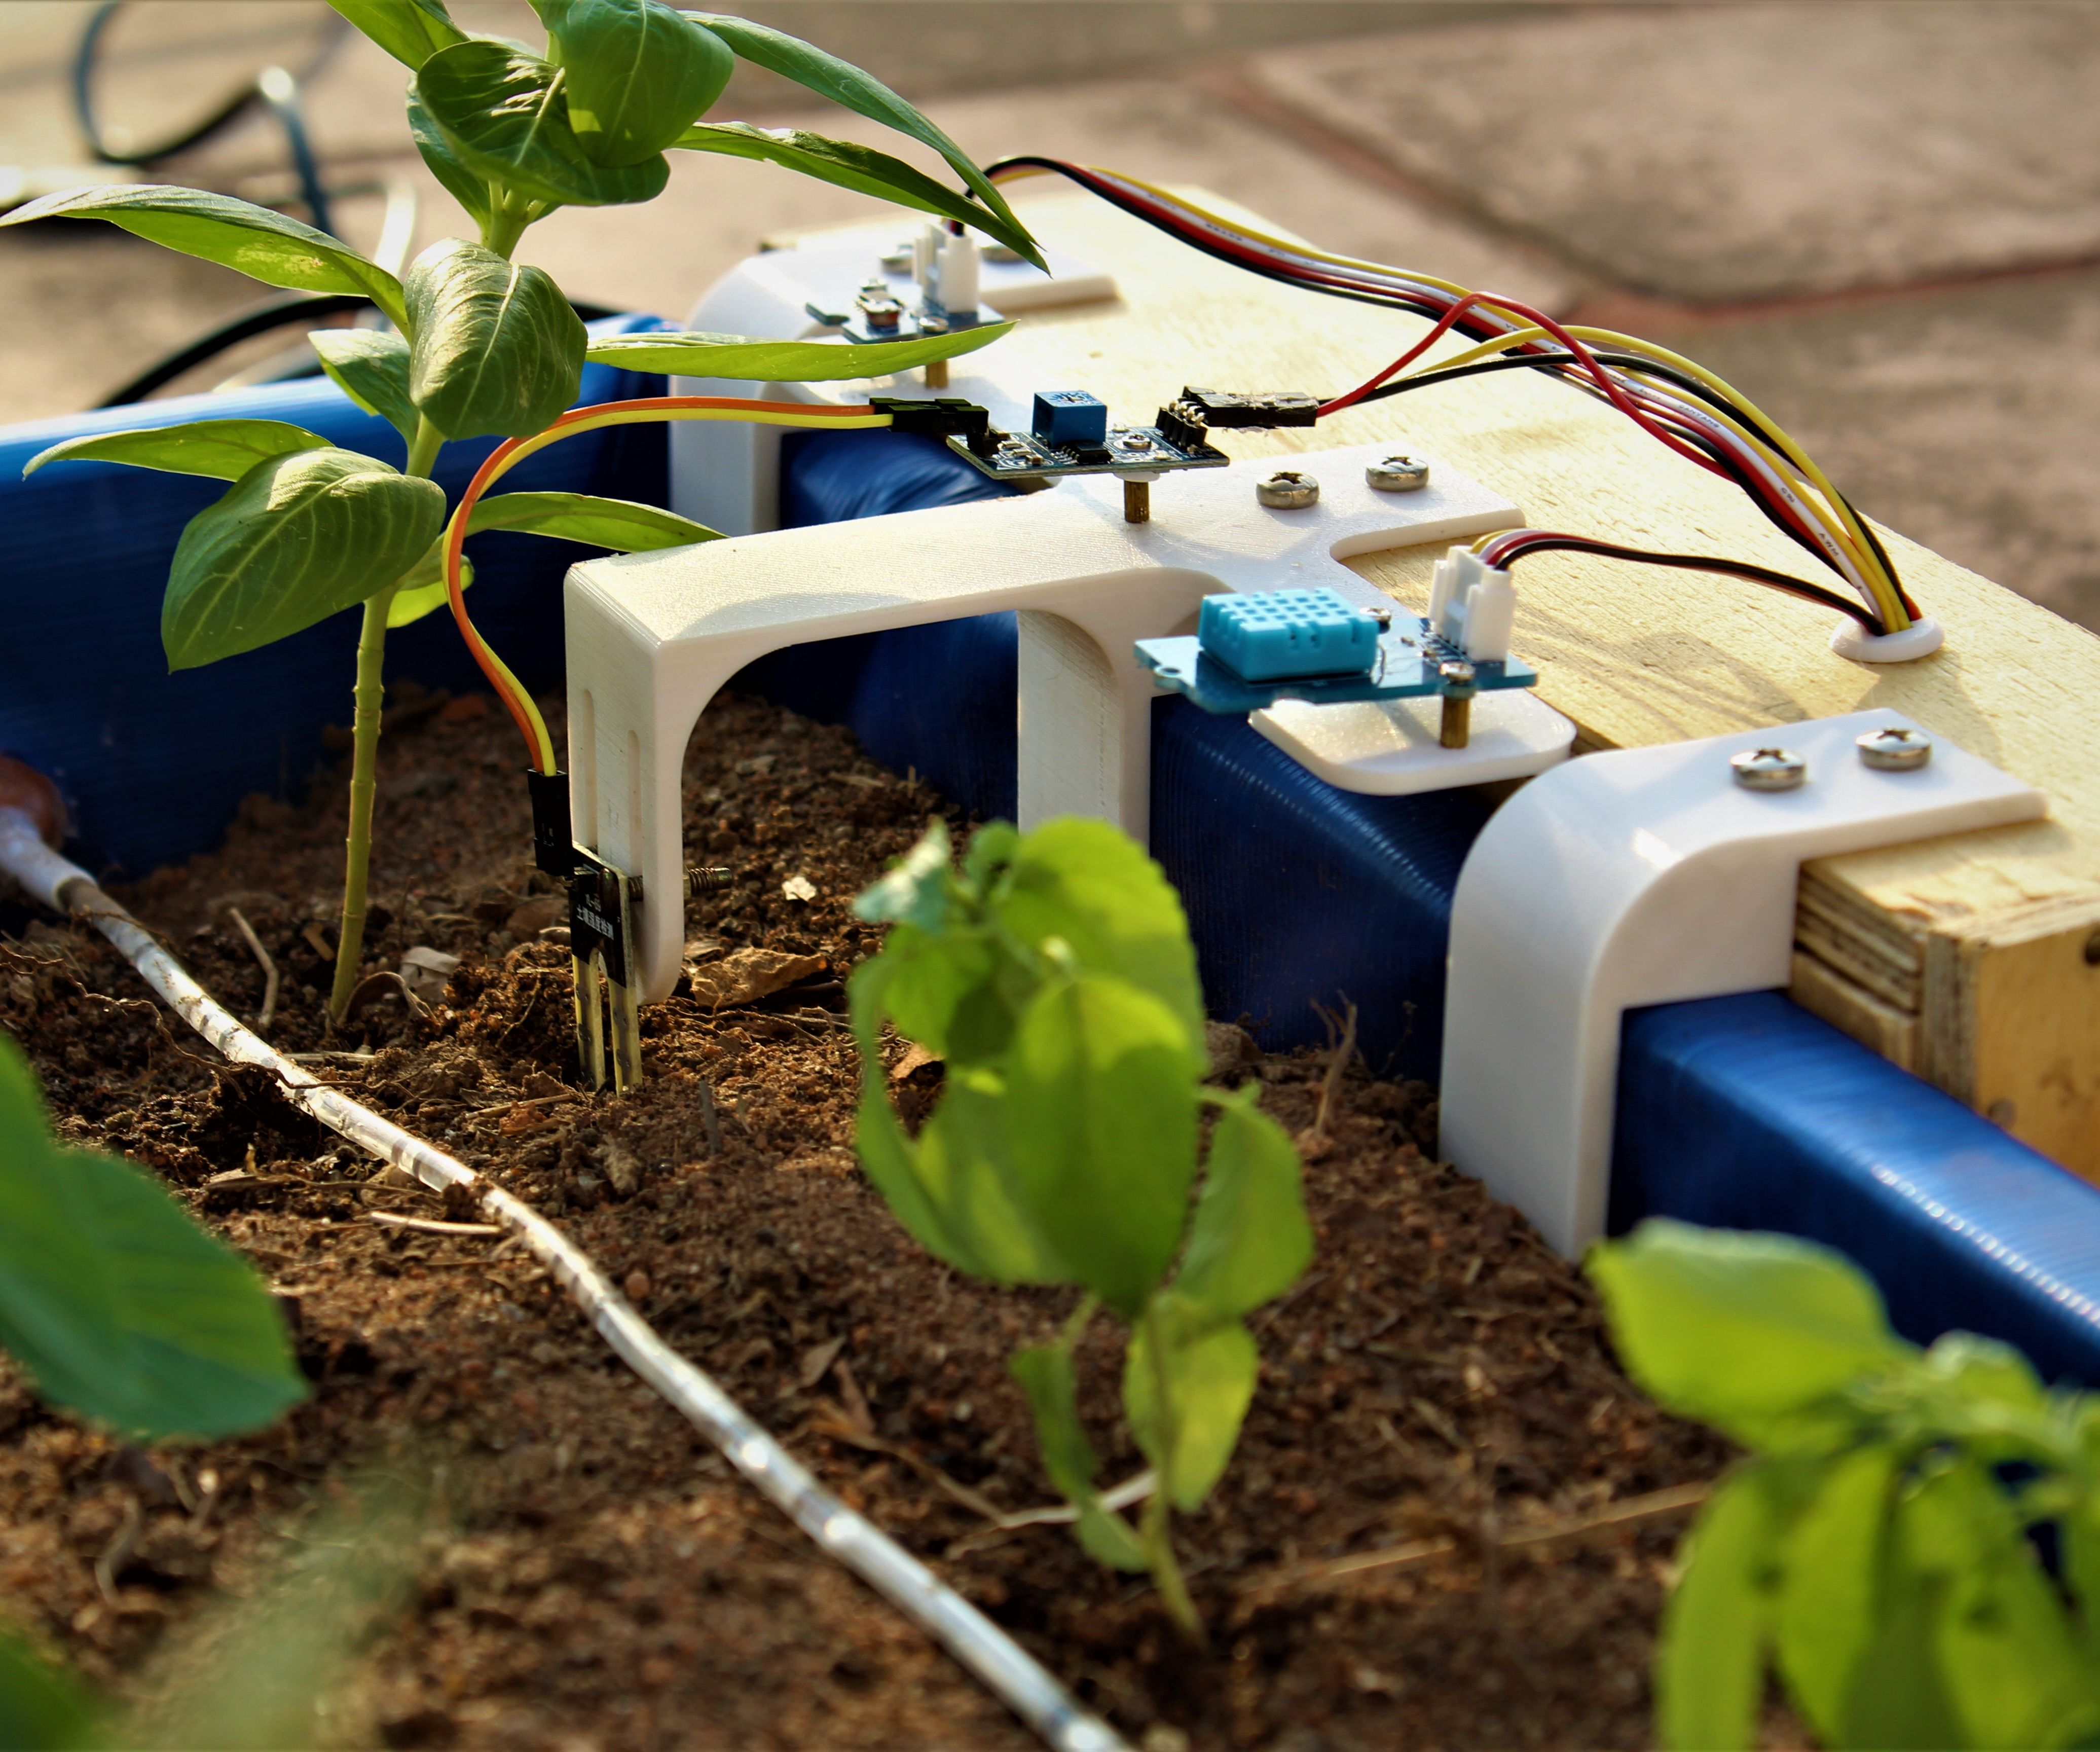 Smart indoor//outdoor watering solution system device with soil moisture sensor